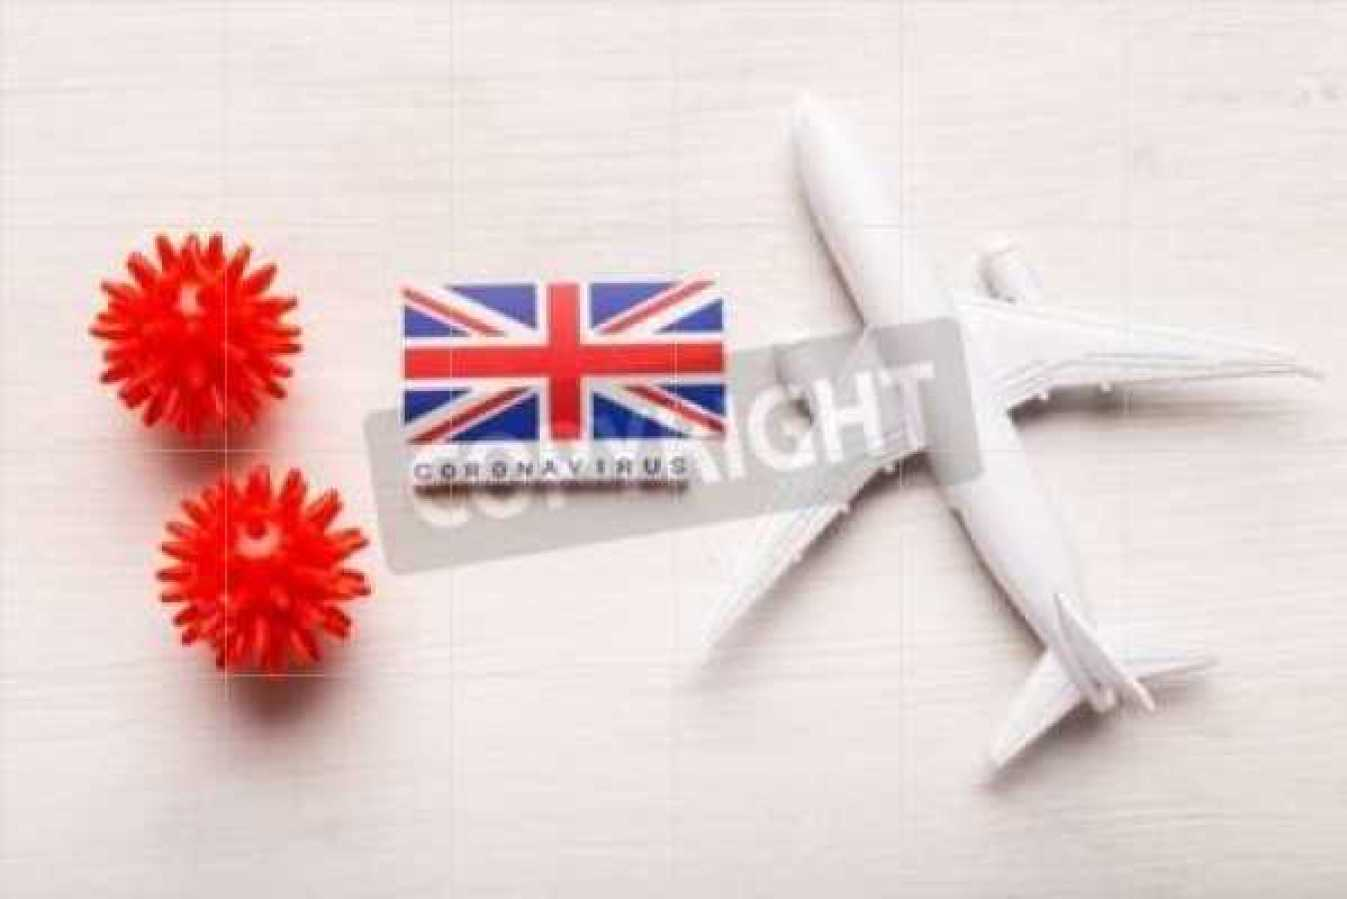 Flight ban and closed borders for tourists and travelers with coronavirus covid-19. Airplane and flag of United Kingdom on a white background. Coronavirus pandemic. Mutant COVID-19 strain travel restrictions illustration.